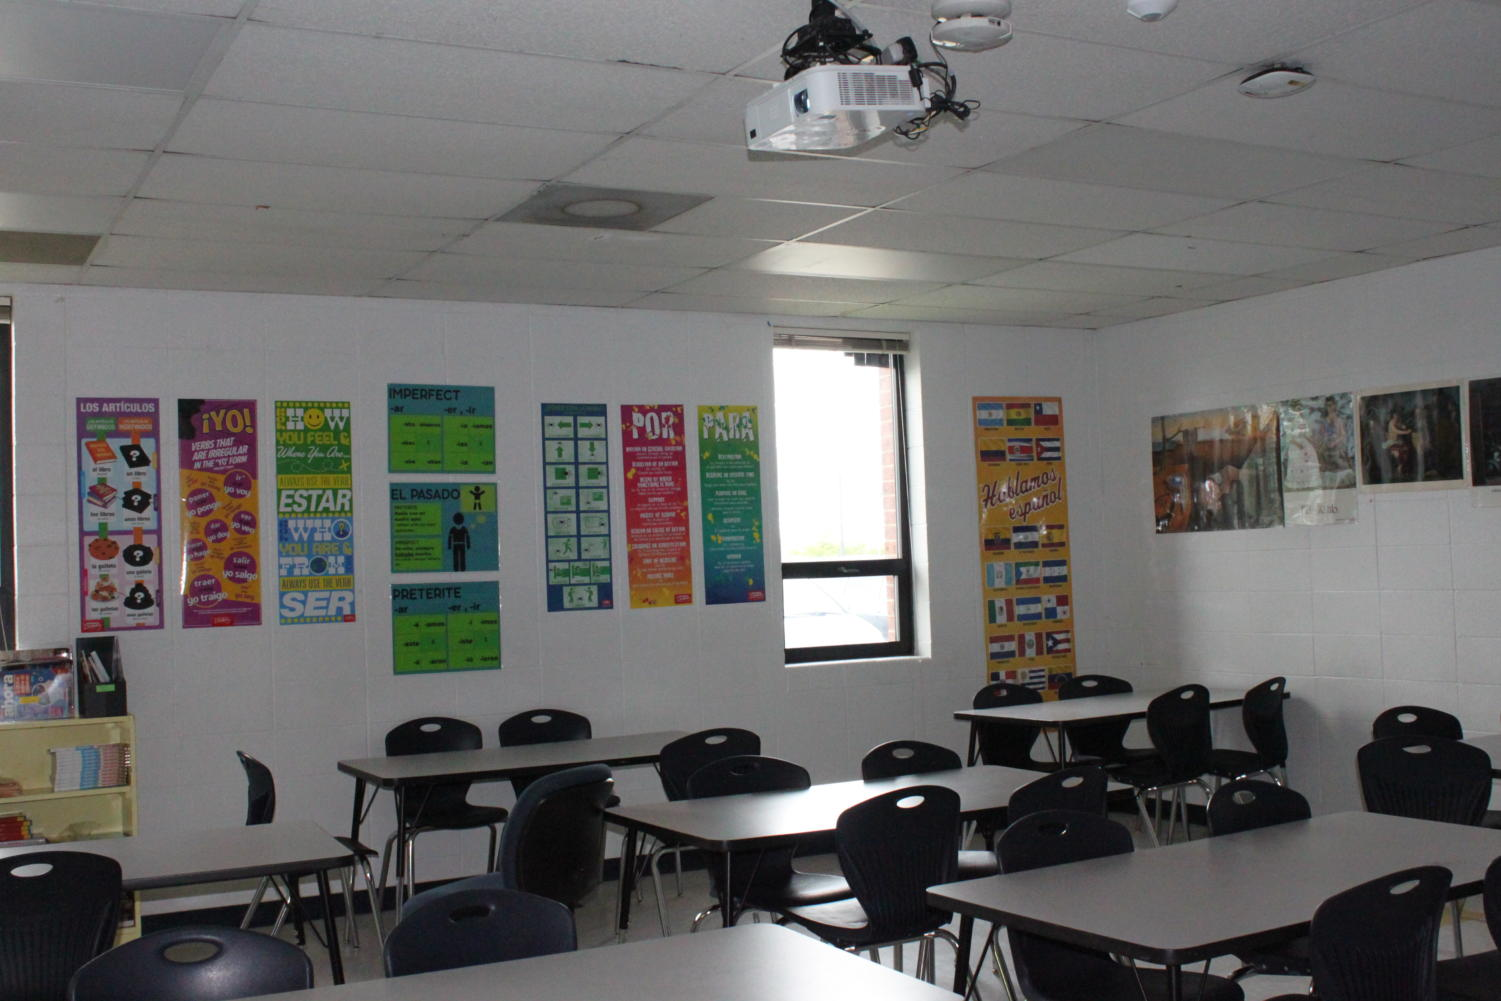 Many classrooms were left without power during 1st period on the first day back from a long summer.